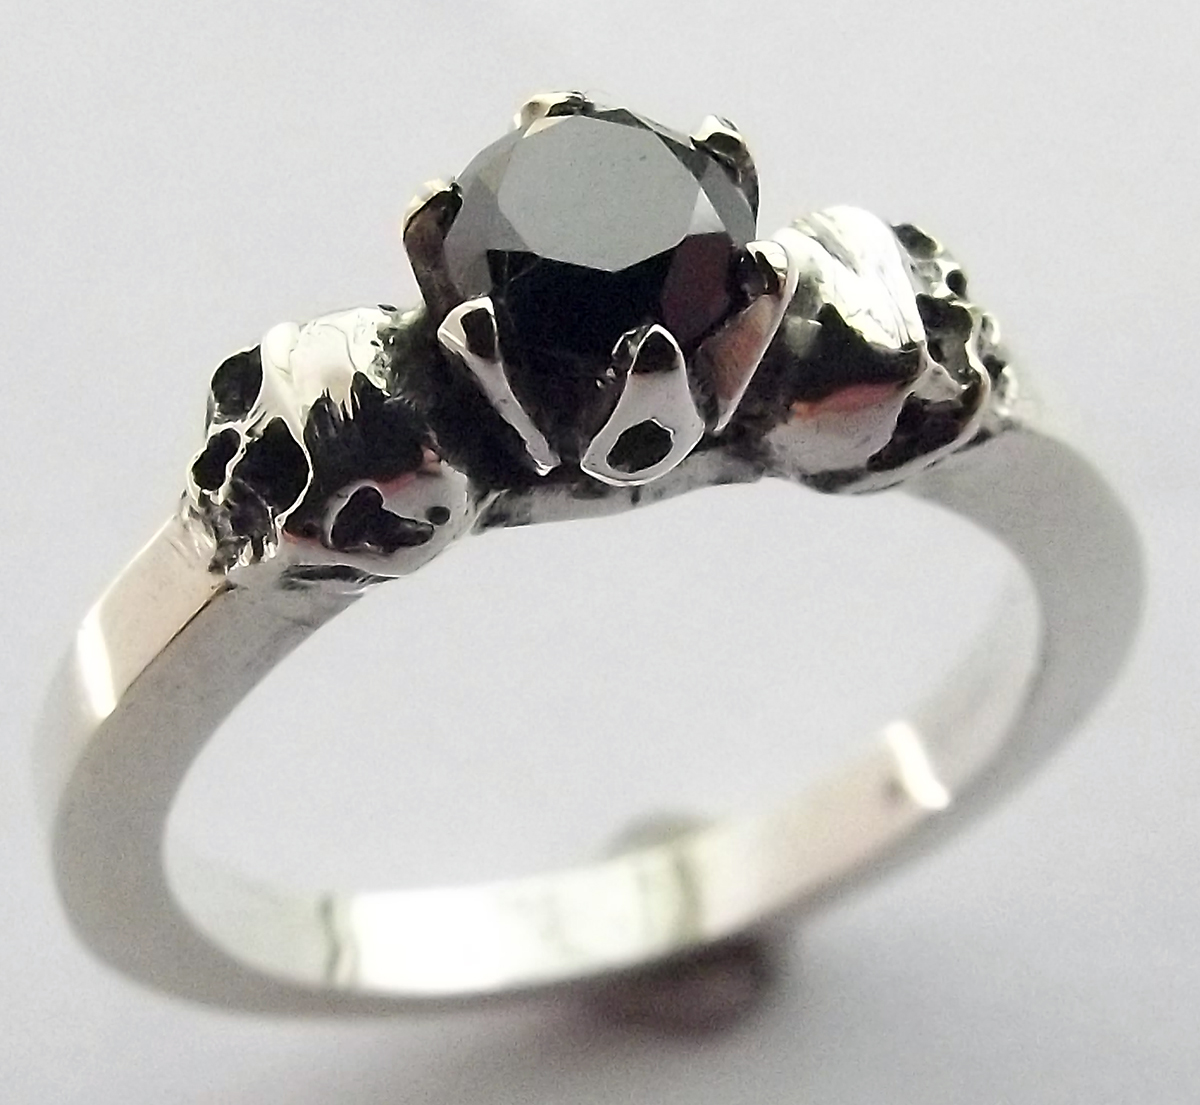 Skull Ring made by Dazzling Jewellers (10)